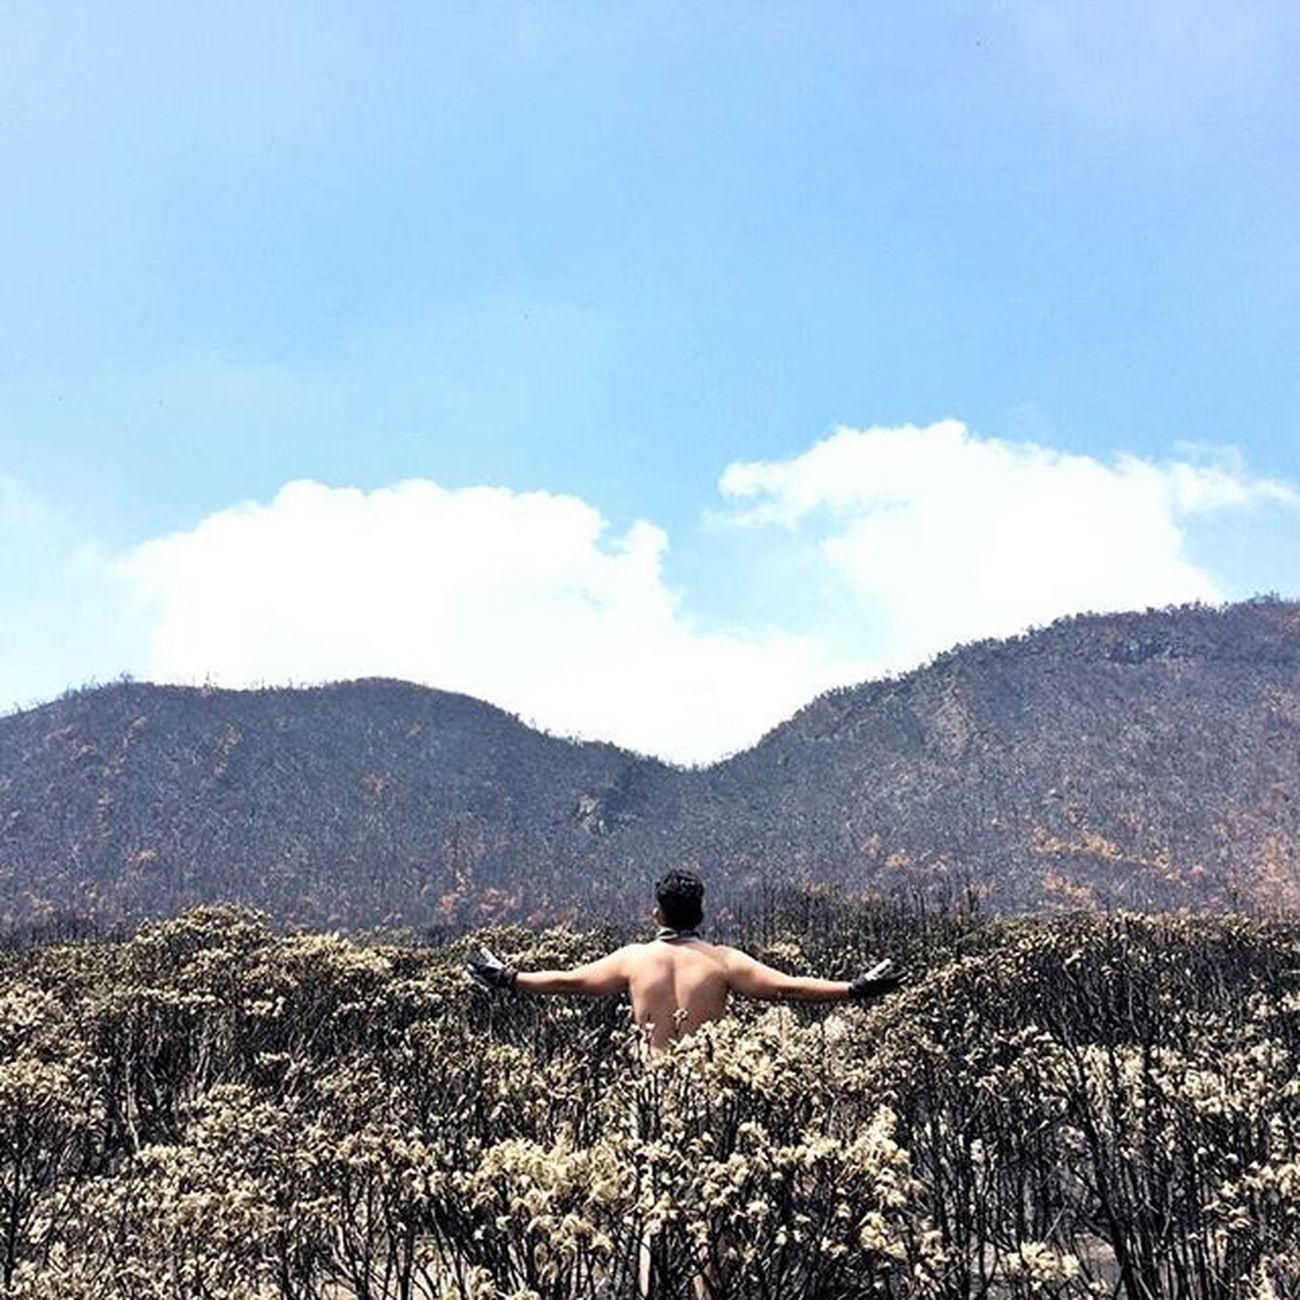 .Black Forest. 14wayspapandayan . . . 4 ha of woods and edelweis field scorched last month in Tegal Alun, Mt. Papandayan. Whos fault is this? We dont know for sure. Id_pendaki Instanusantara Jj_tinypeeps Vscogood Wanderlust Wanderlustsyndicate Livefolkindonesia Mountain Minimalpeople Akujalanjalanloh